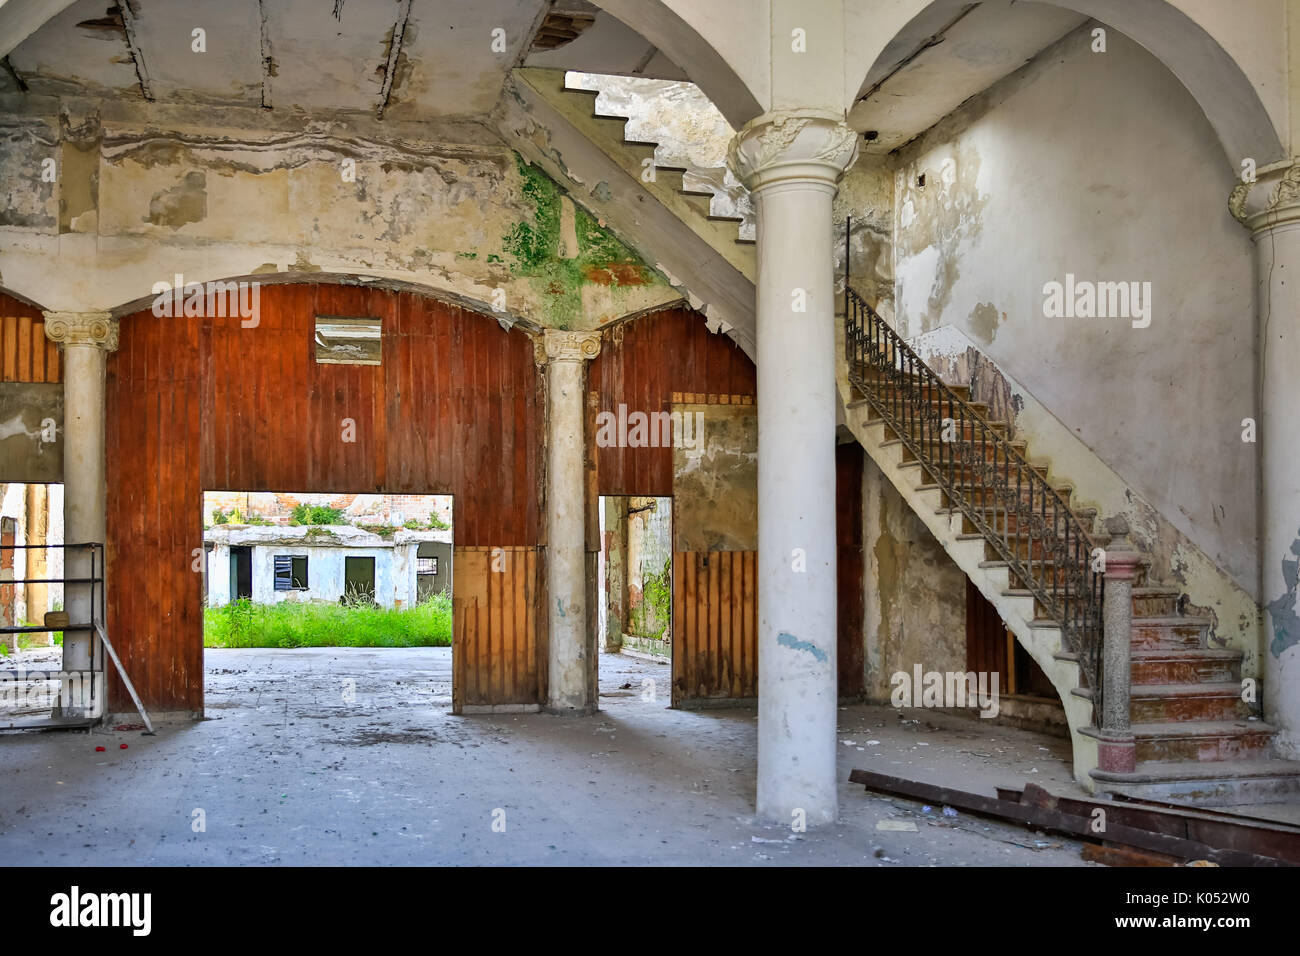 Dilapidated historic architecture in need of renovation in Regla, Havana, Cuba - Stock Image